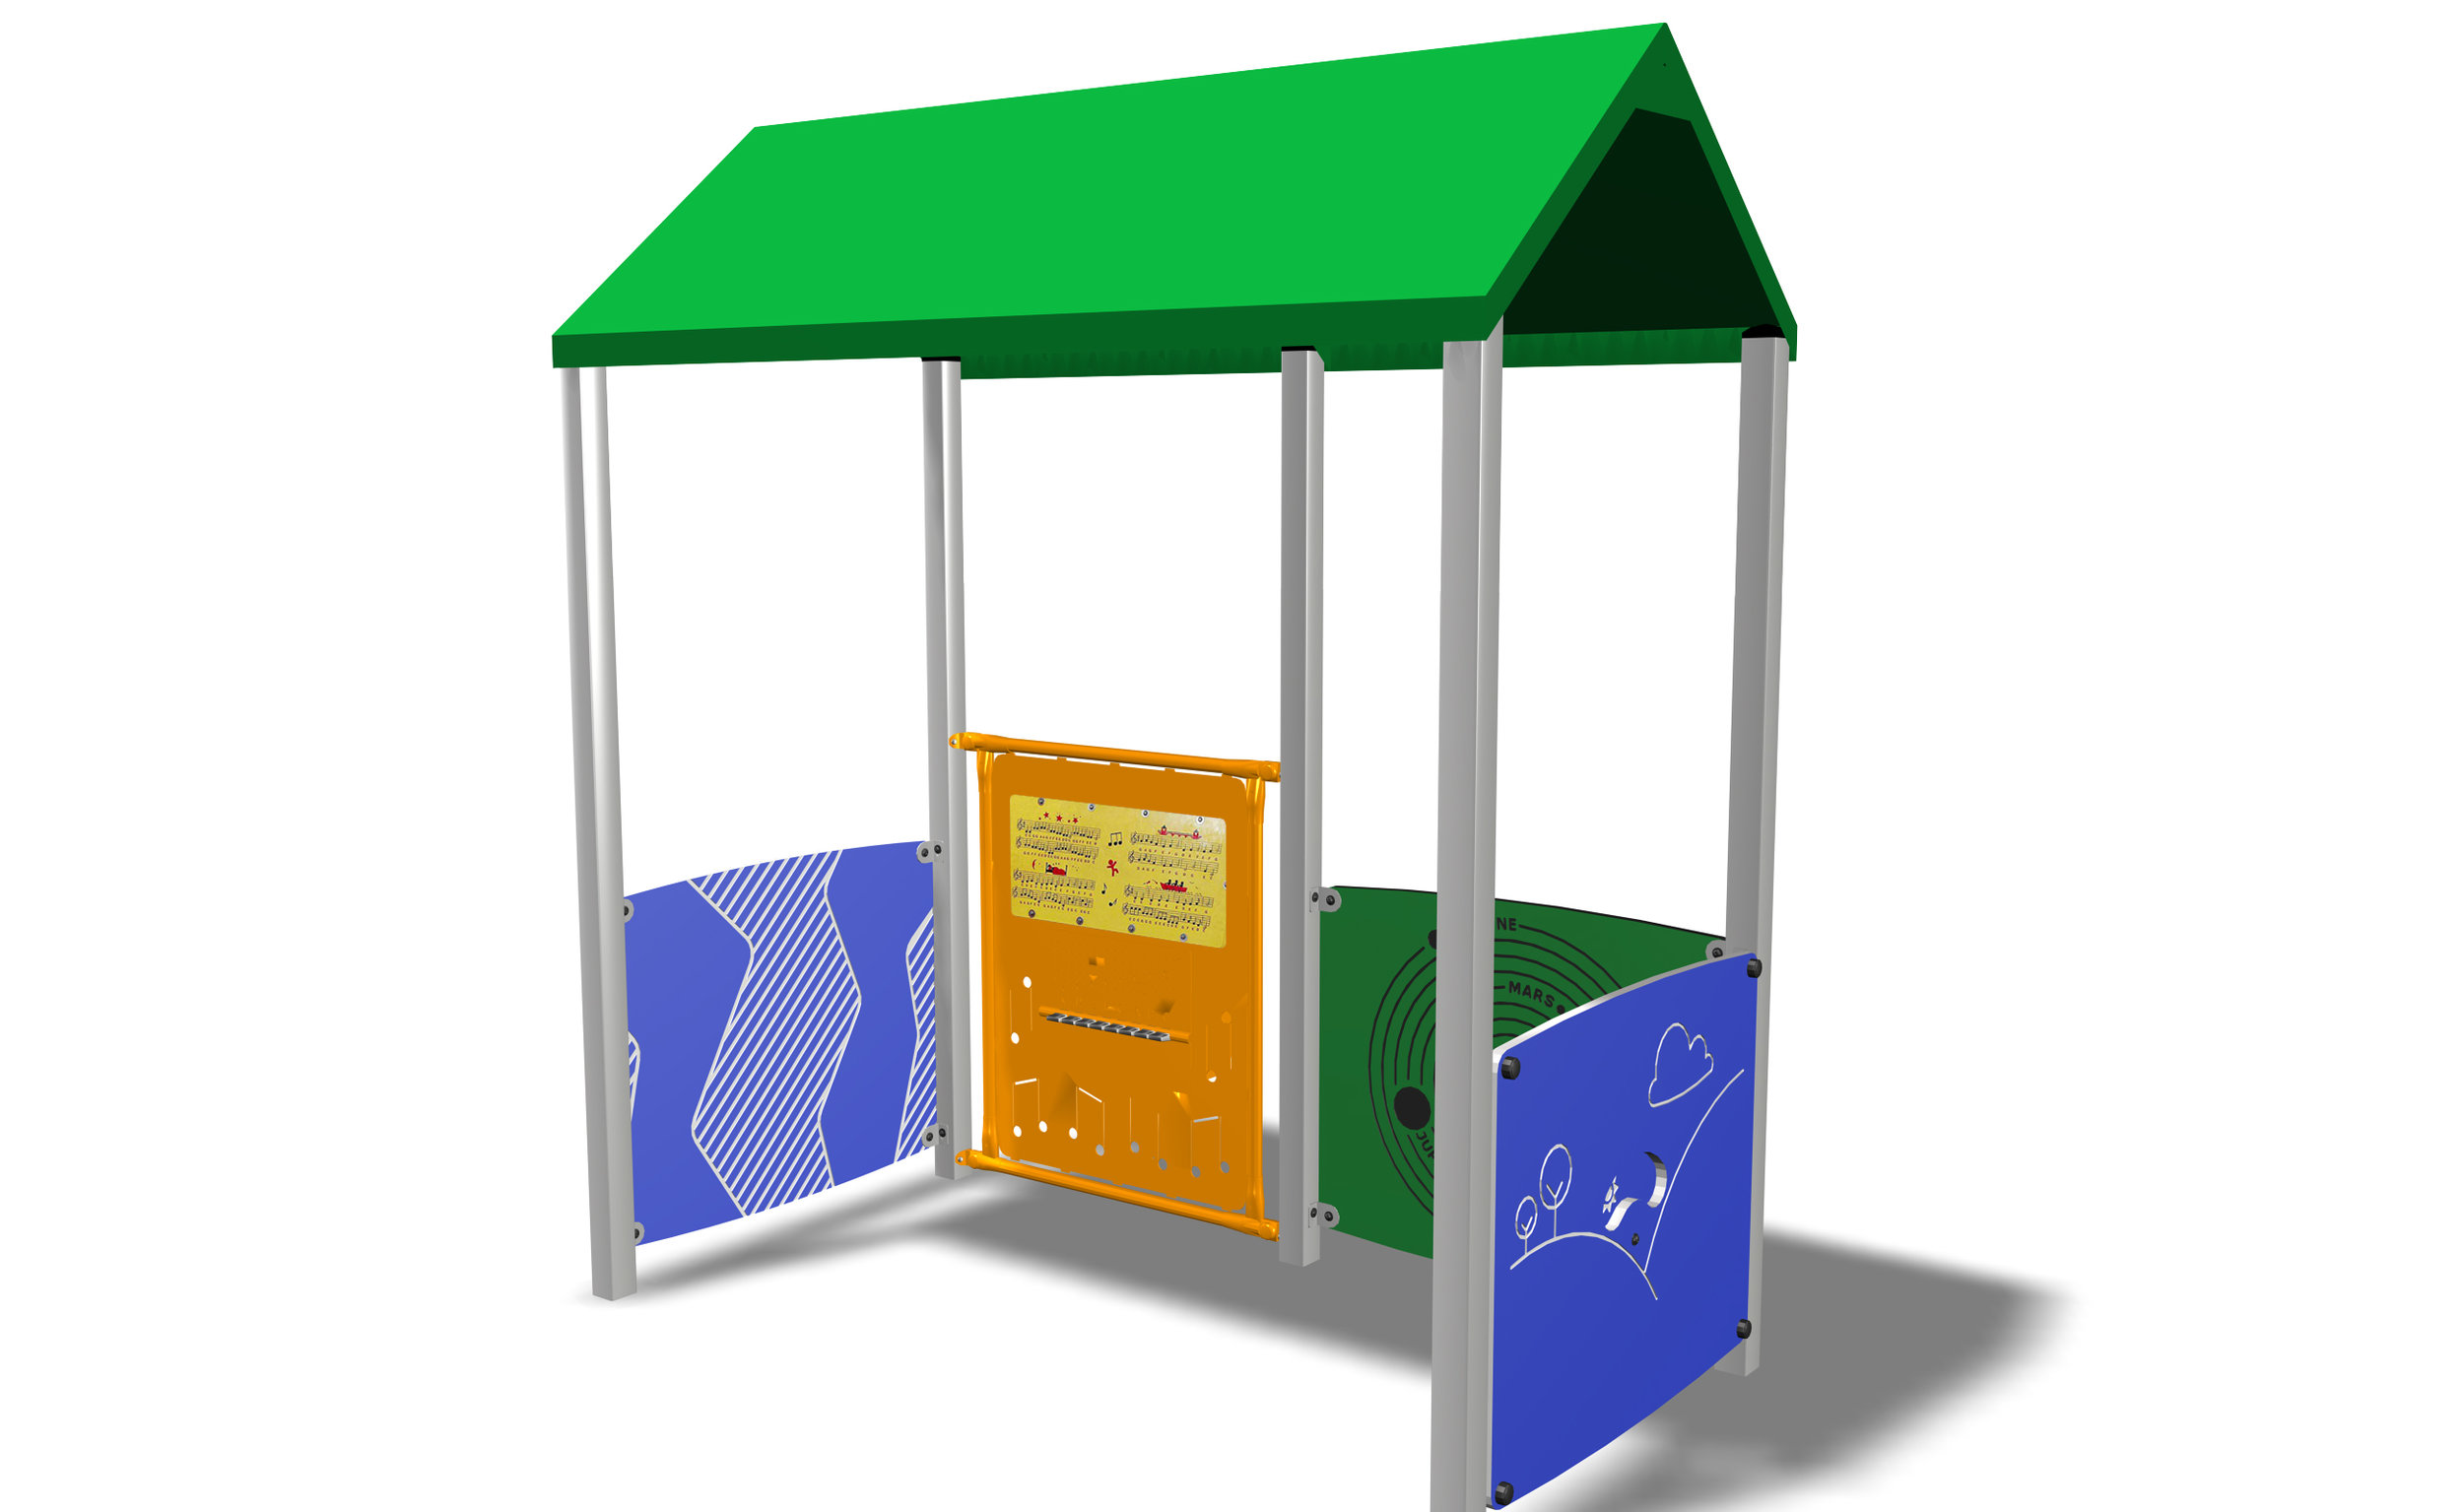 Sensory Hut - Our custom designed sensory huts provide interactive play opportunities for kids of all ages and abilities. With the option to swap out play panels, this freestanding hut provides playgrounds with a quiet spot for children to play and co-operate together.